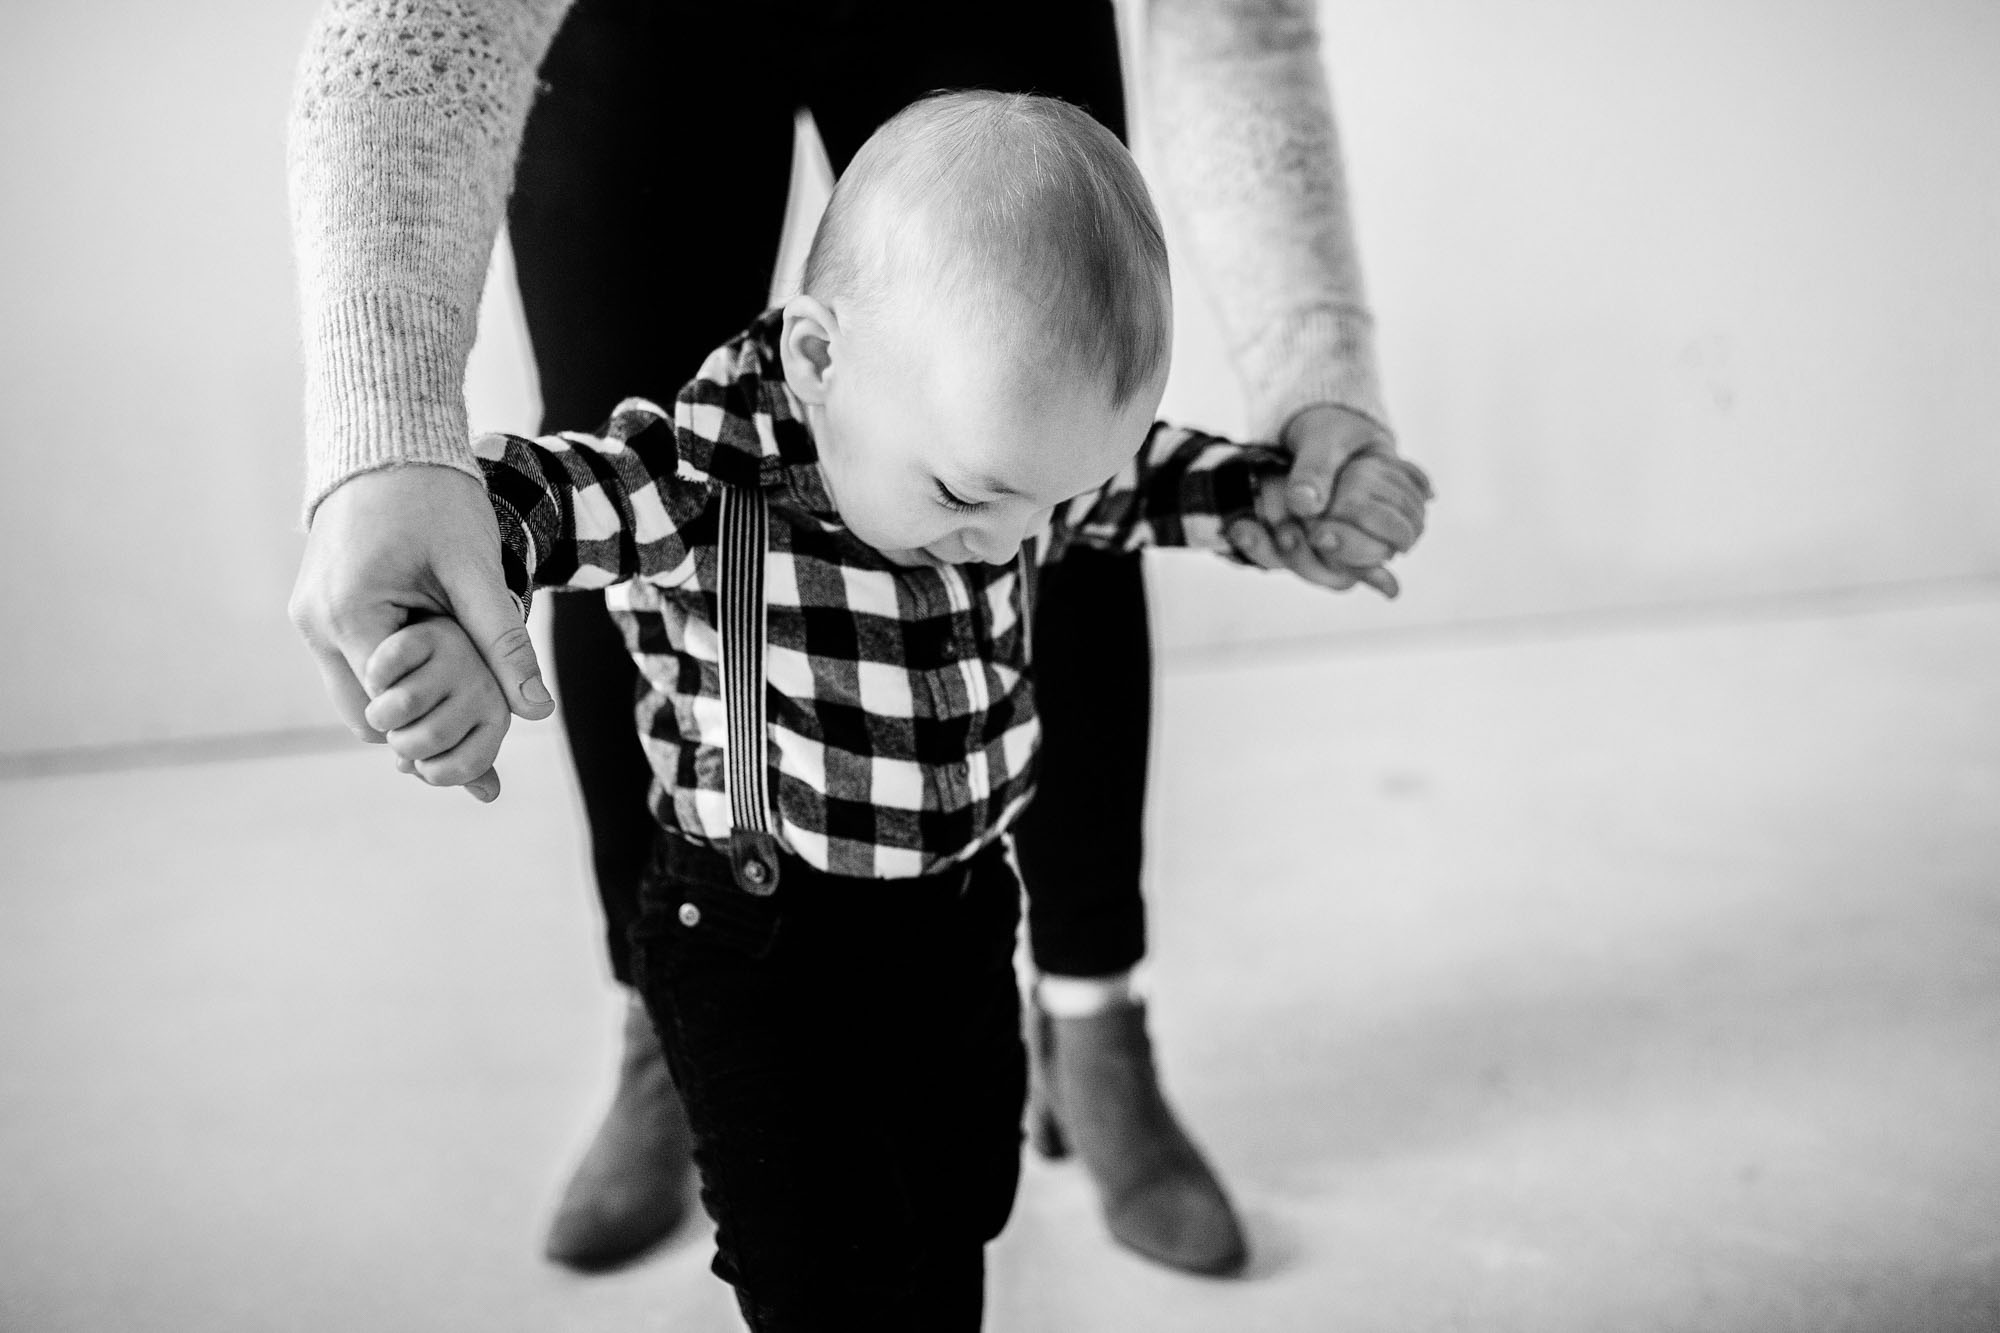 A toddler relies on his mother for help while he tried to walk in his home during a lifestyle photo session with Amy Wright Photography, based out of Roseville, California.